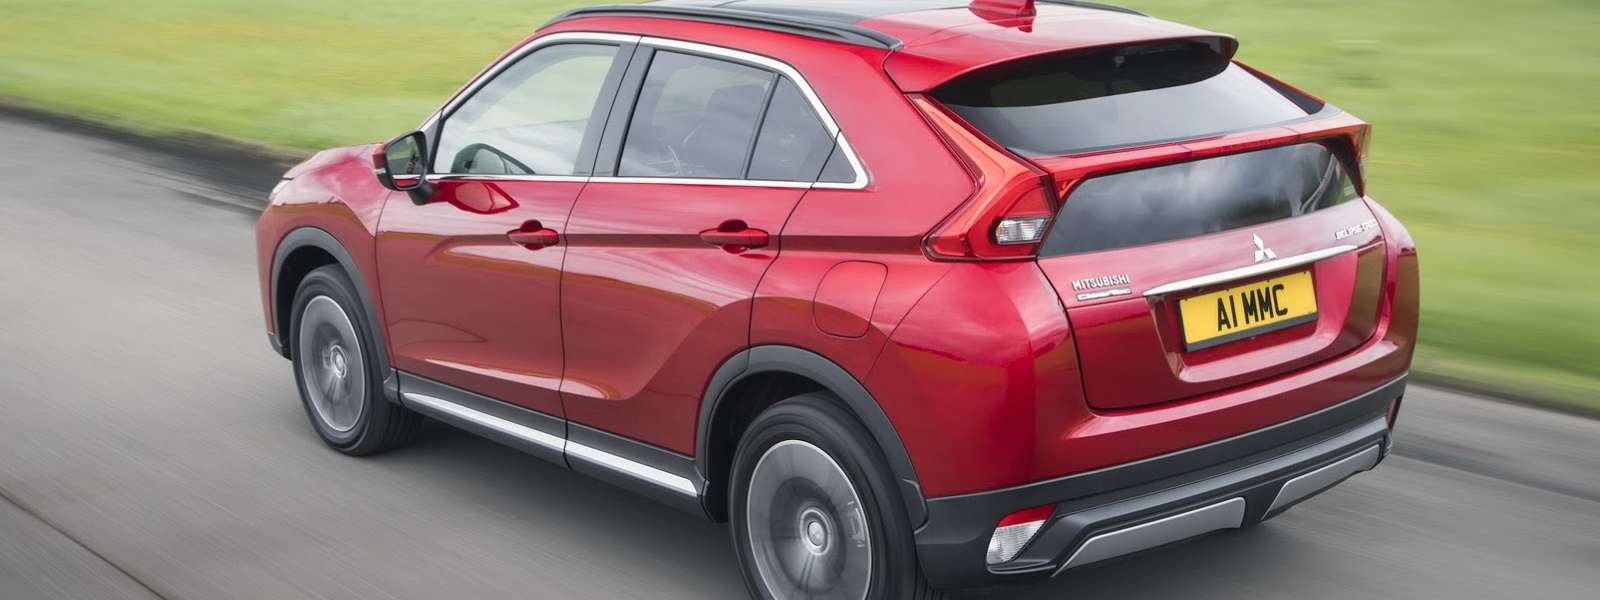 mitsu-eclipse-cross-uk-pricing-3.jpg